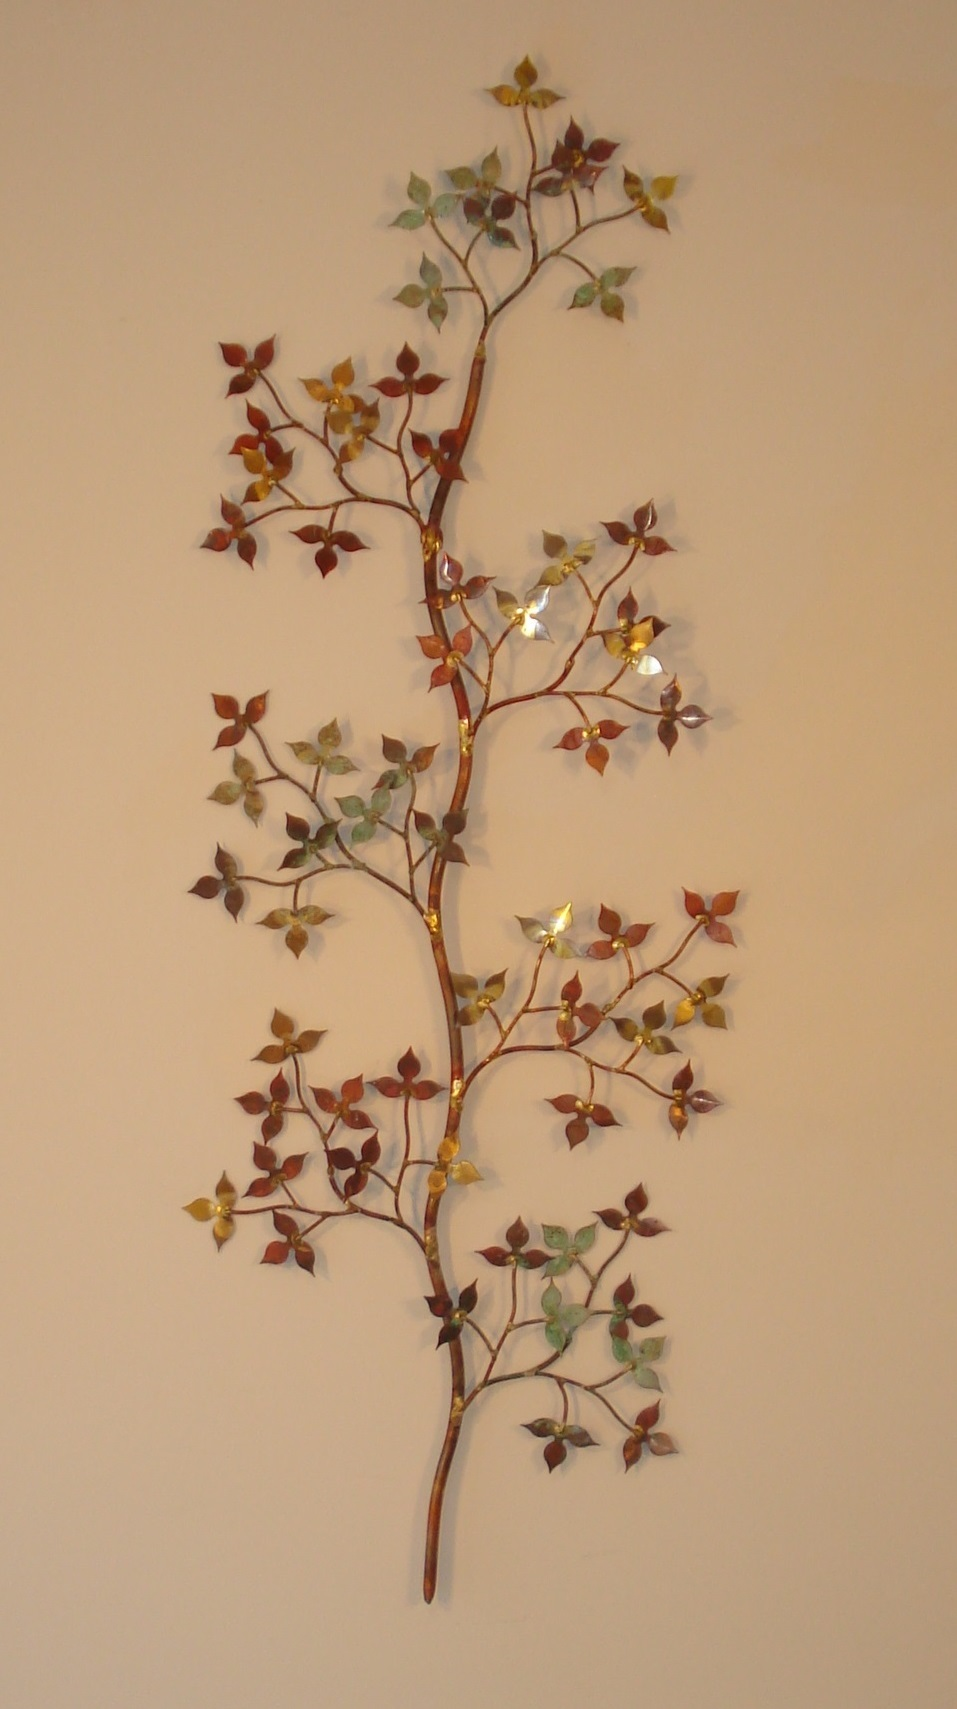 Metal Leaves Wall Decor spring leaves - wall art - metal sculpture - metal decor